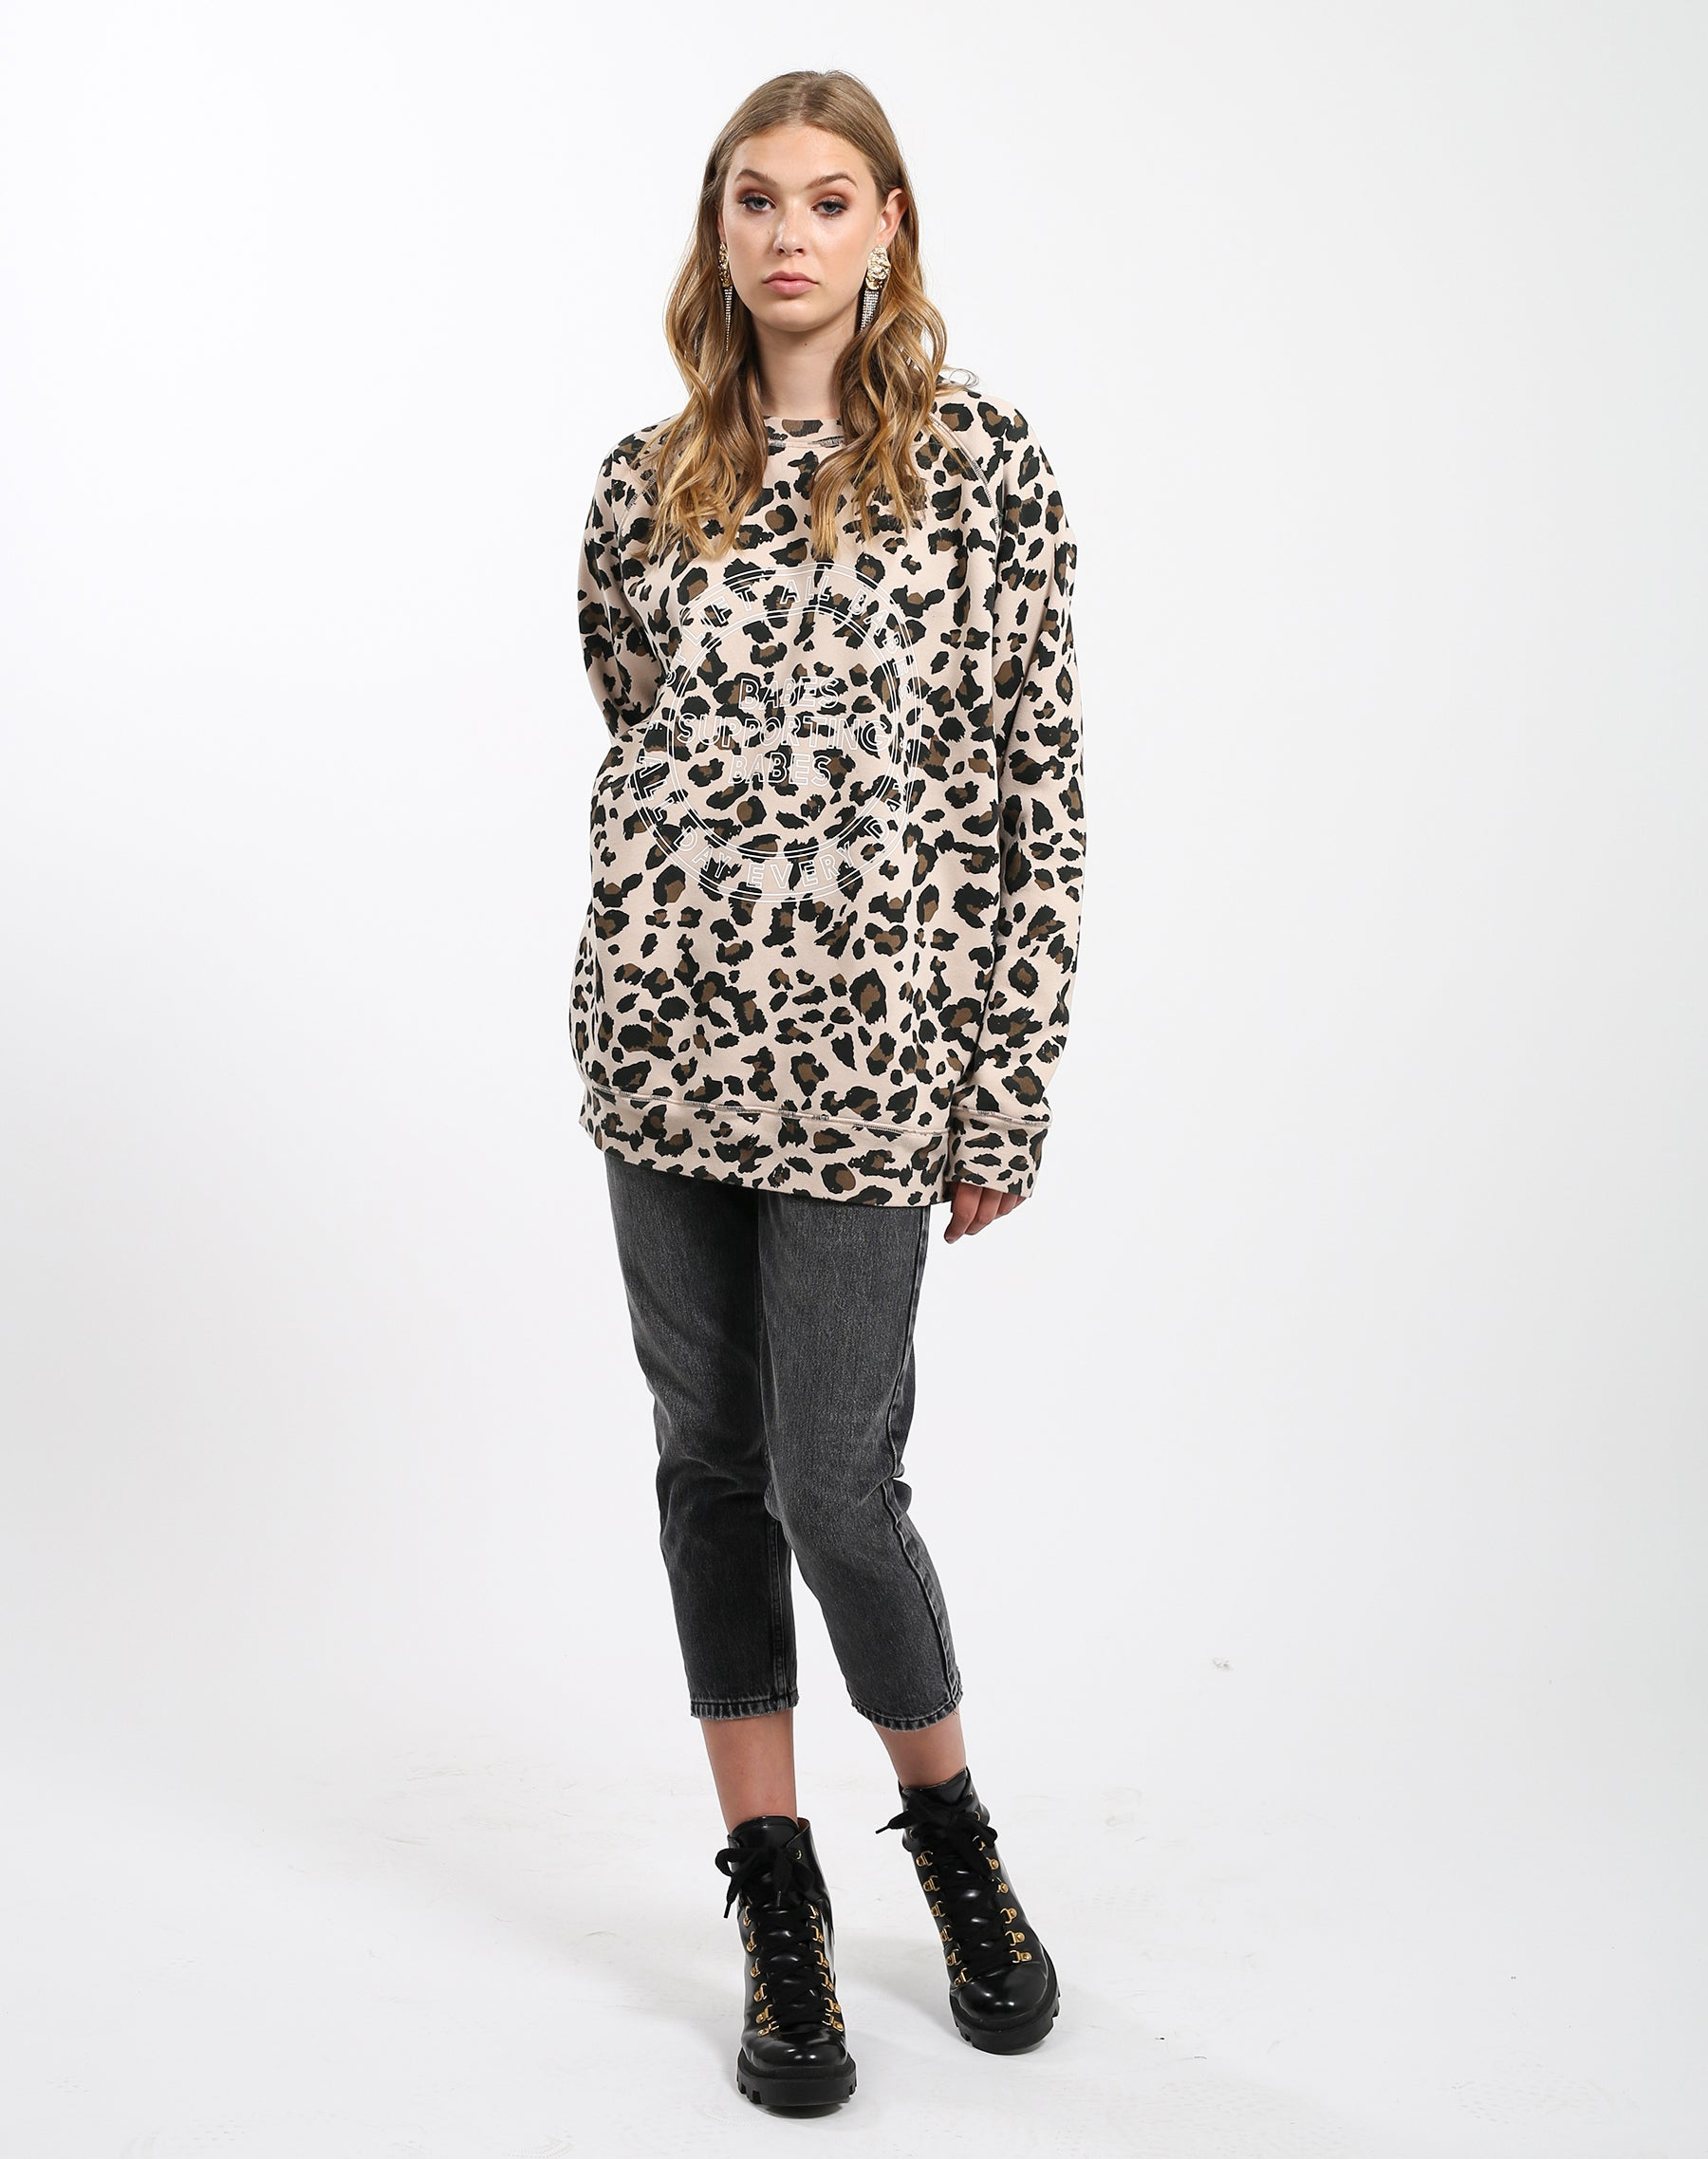 Full photo of the Uplift All Babes big sister crew neck sweatshirt in leopard by Brunette the Label.